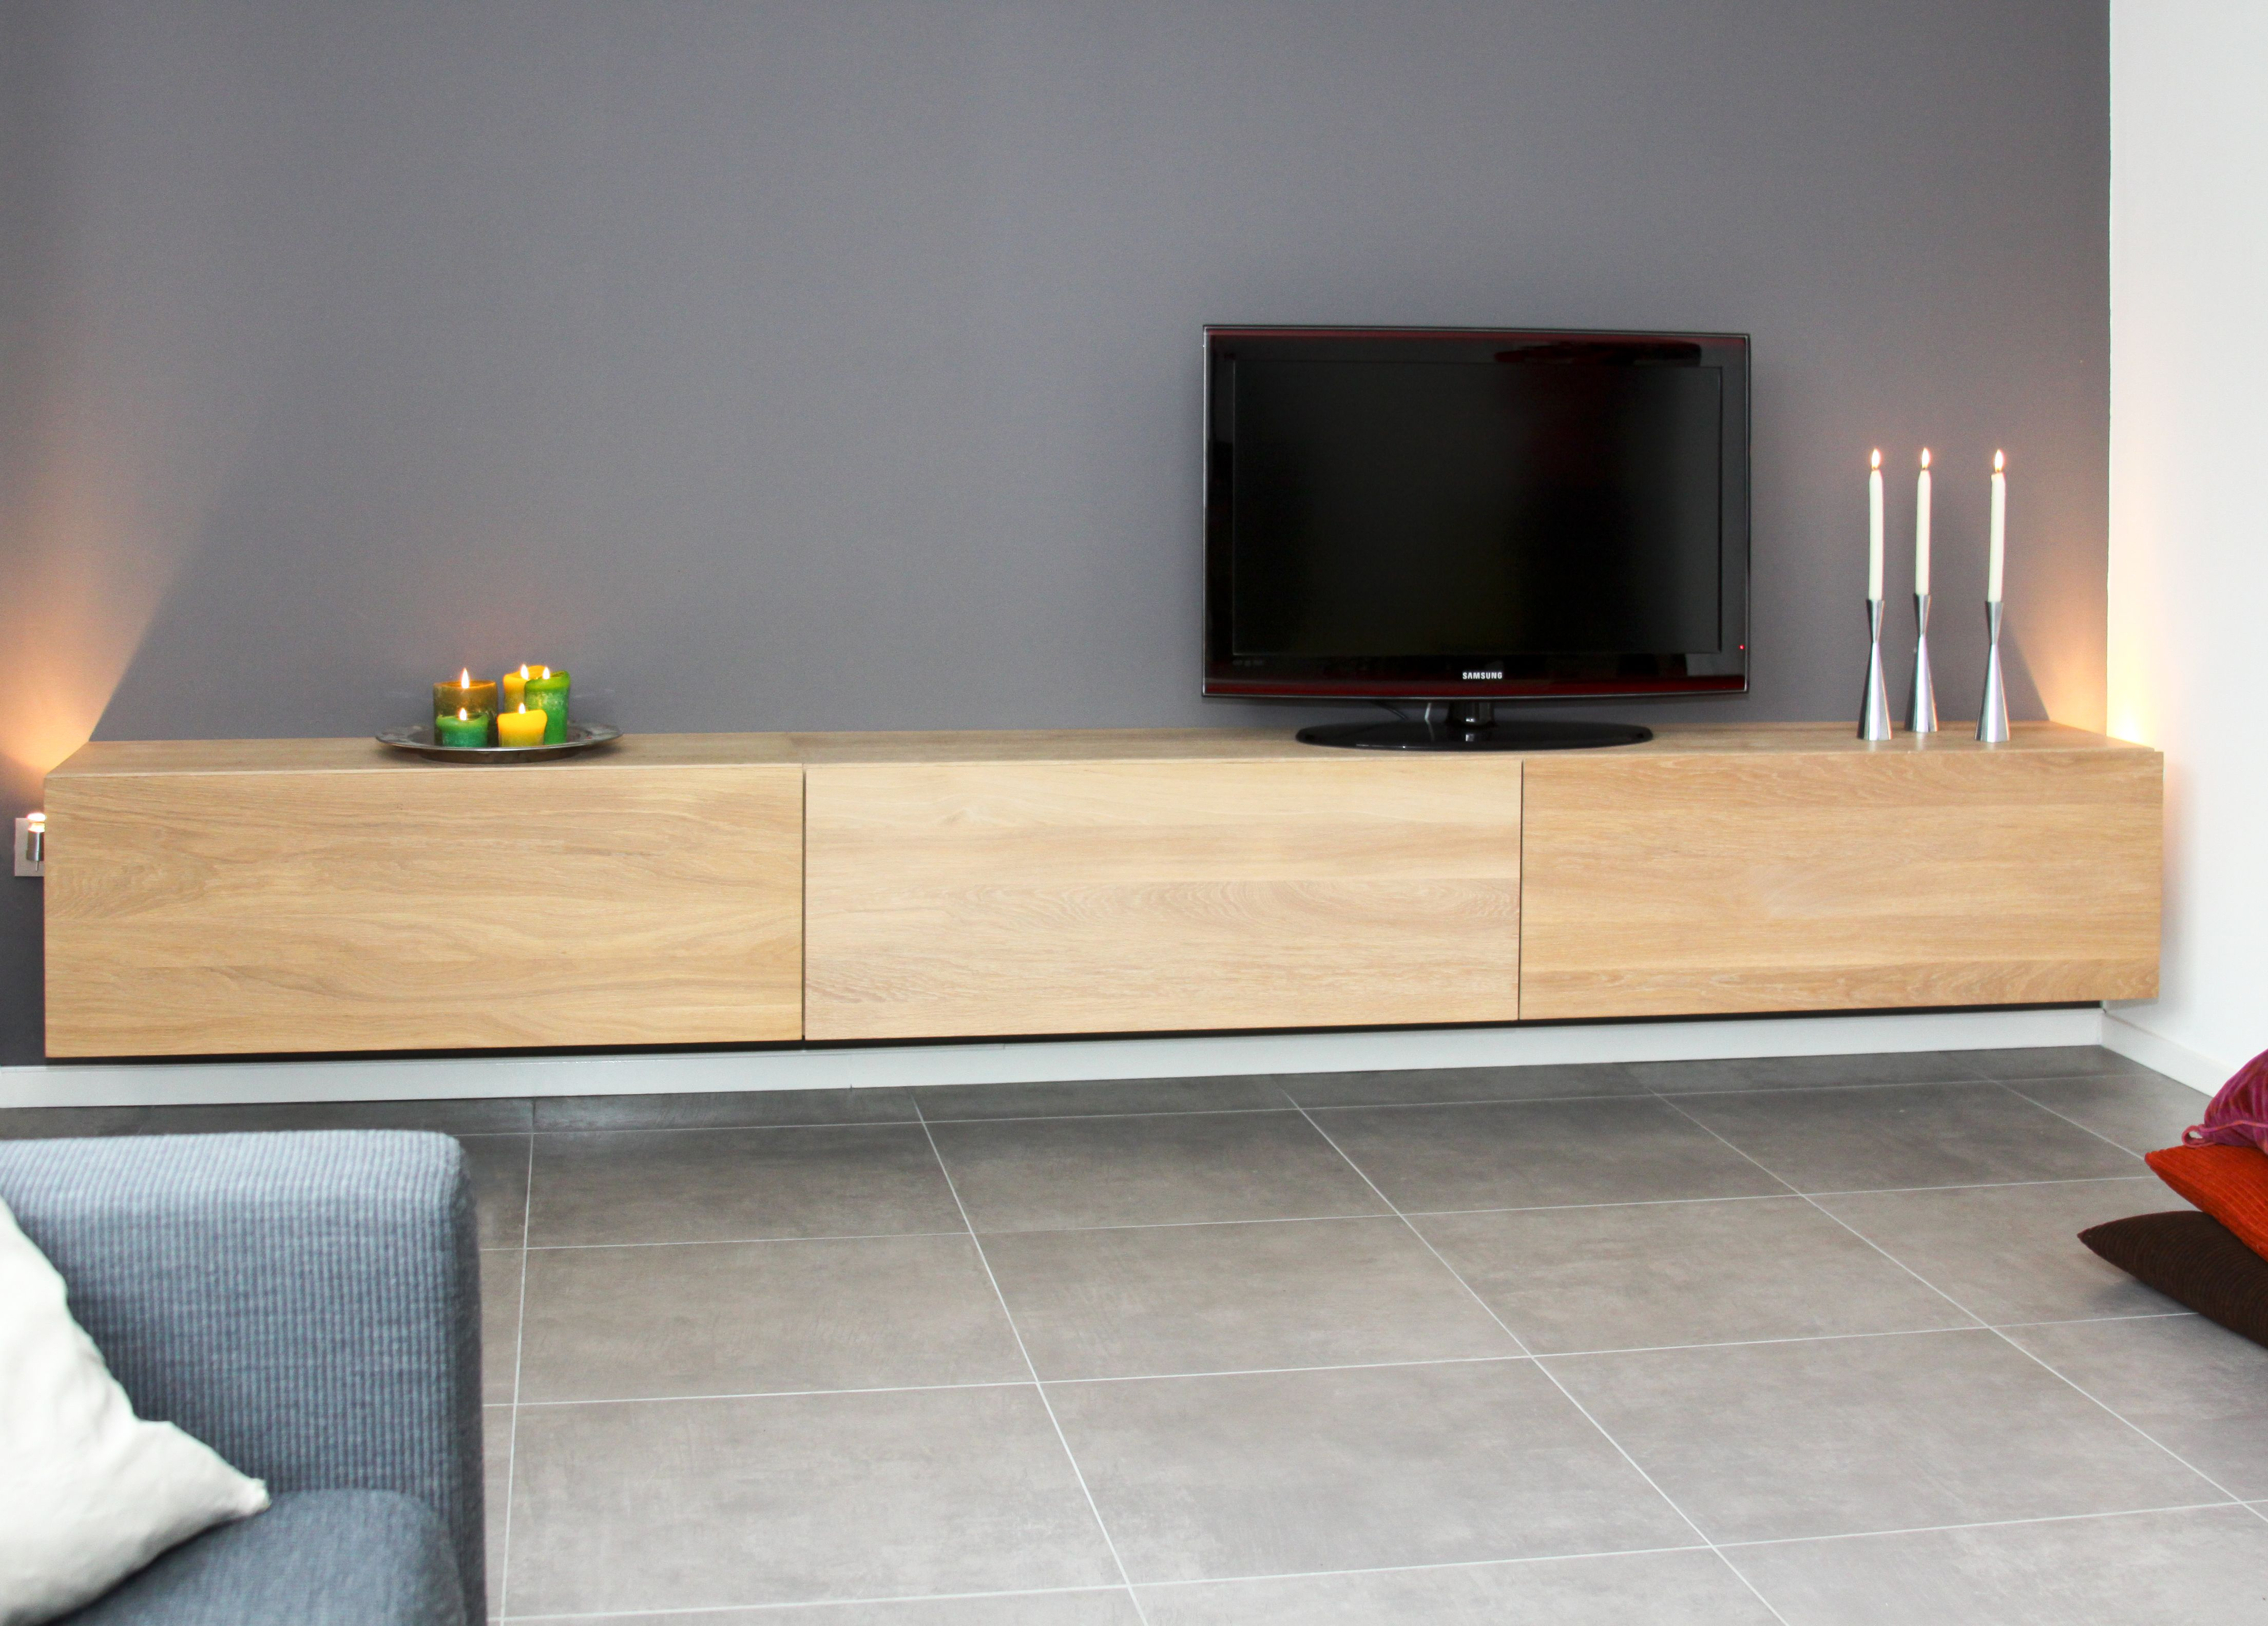 Tv Kast Kleppen.Medium Box Low Tv Meubel Met Romp Klep En Lades In Massief Eiken